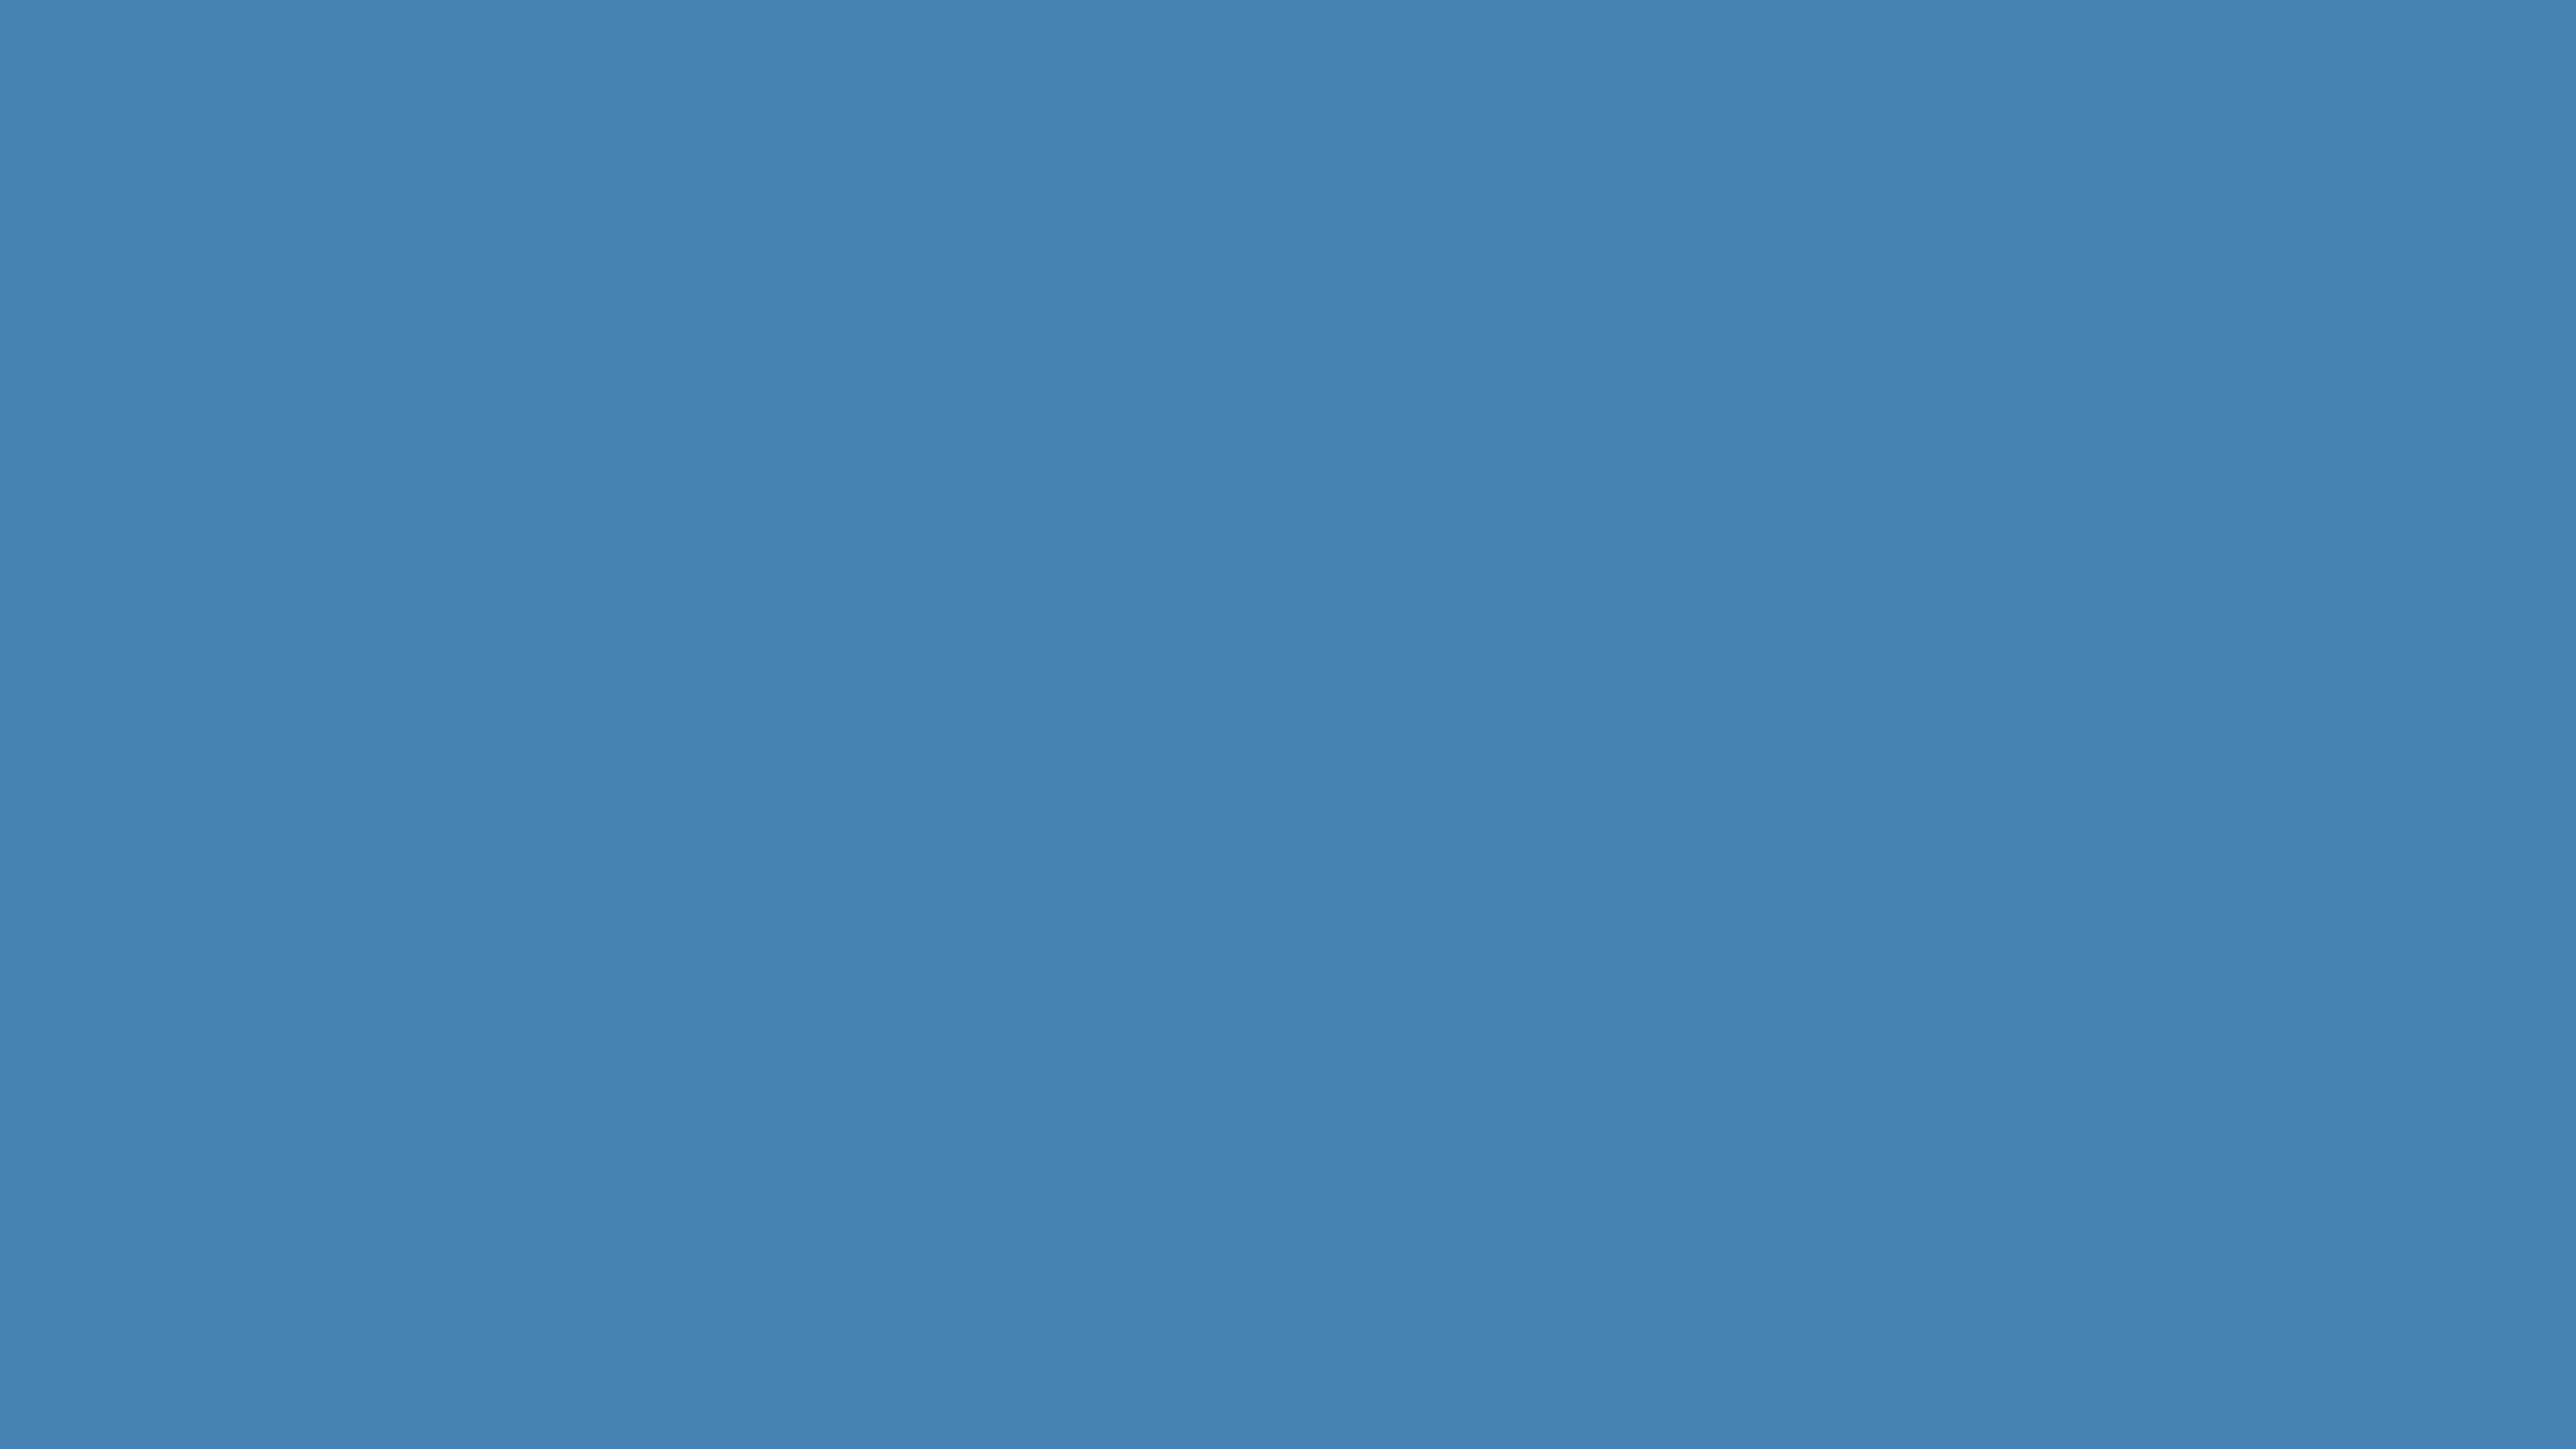 3840x2160 Steel Blue Solid Color Background